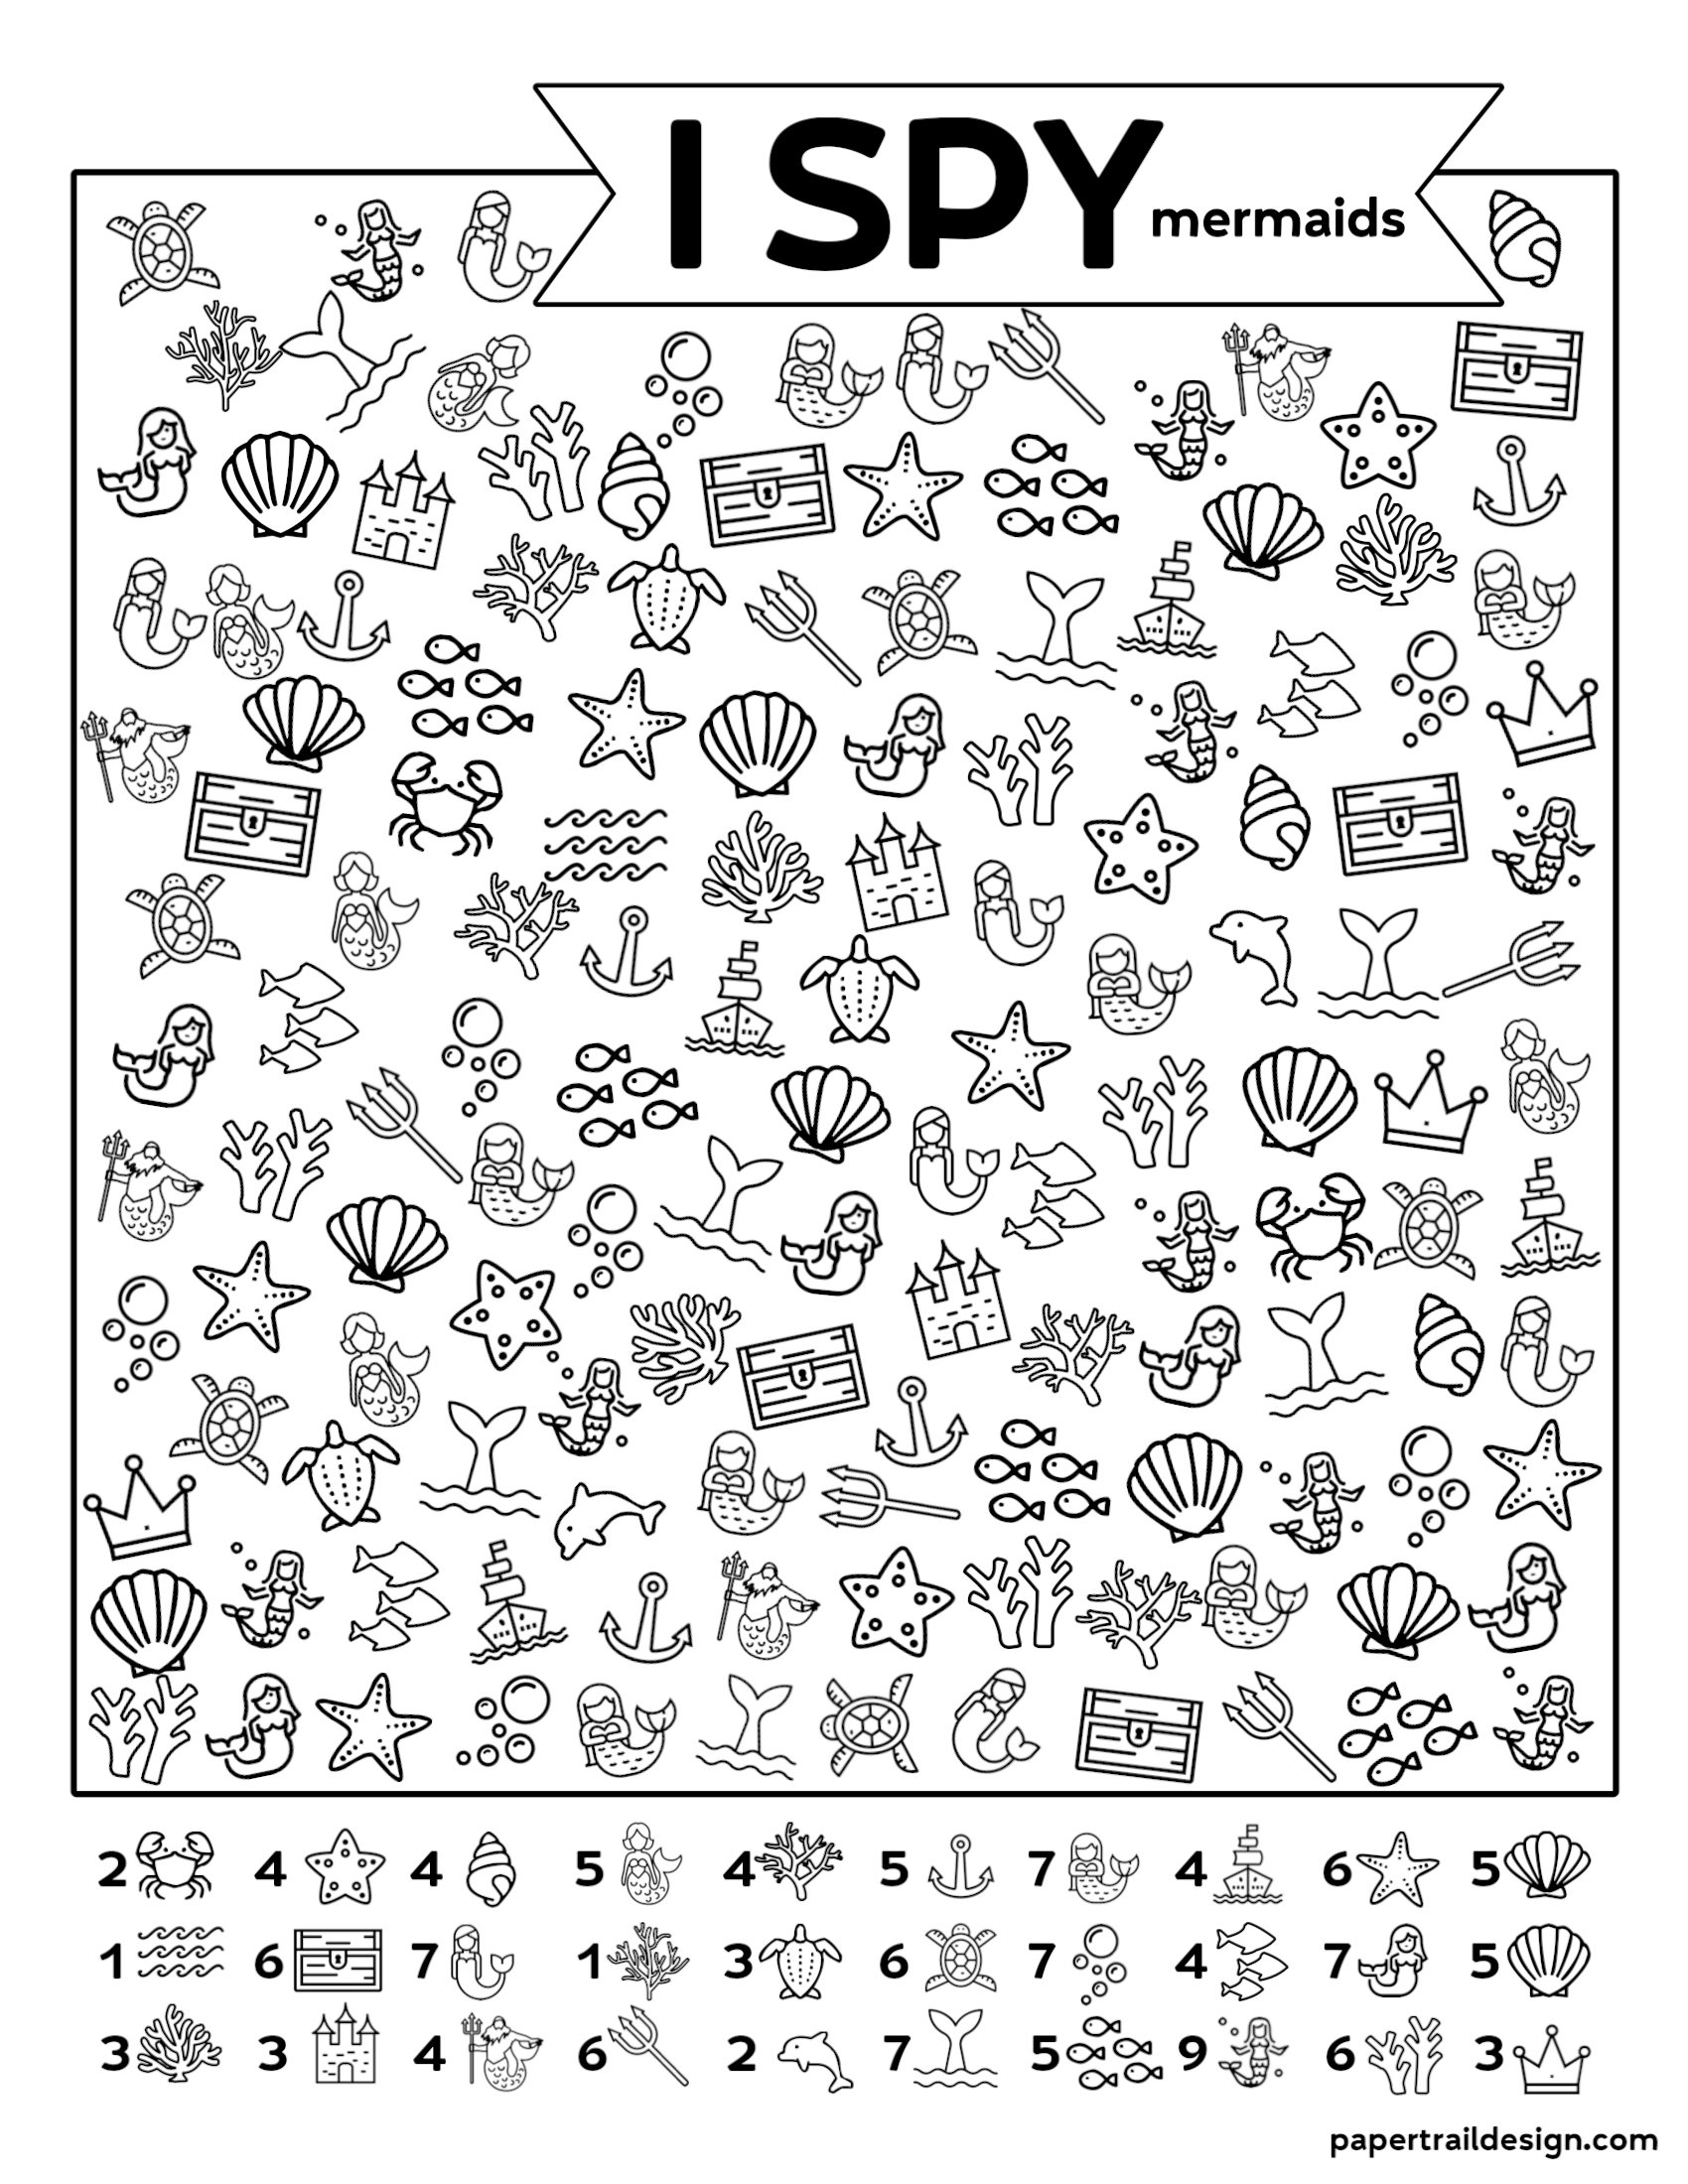 Free Printable I Spy Mermaids Activity